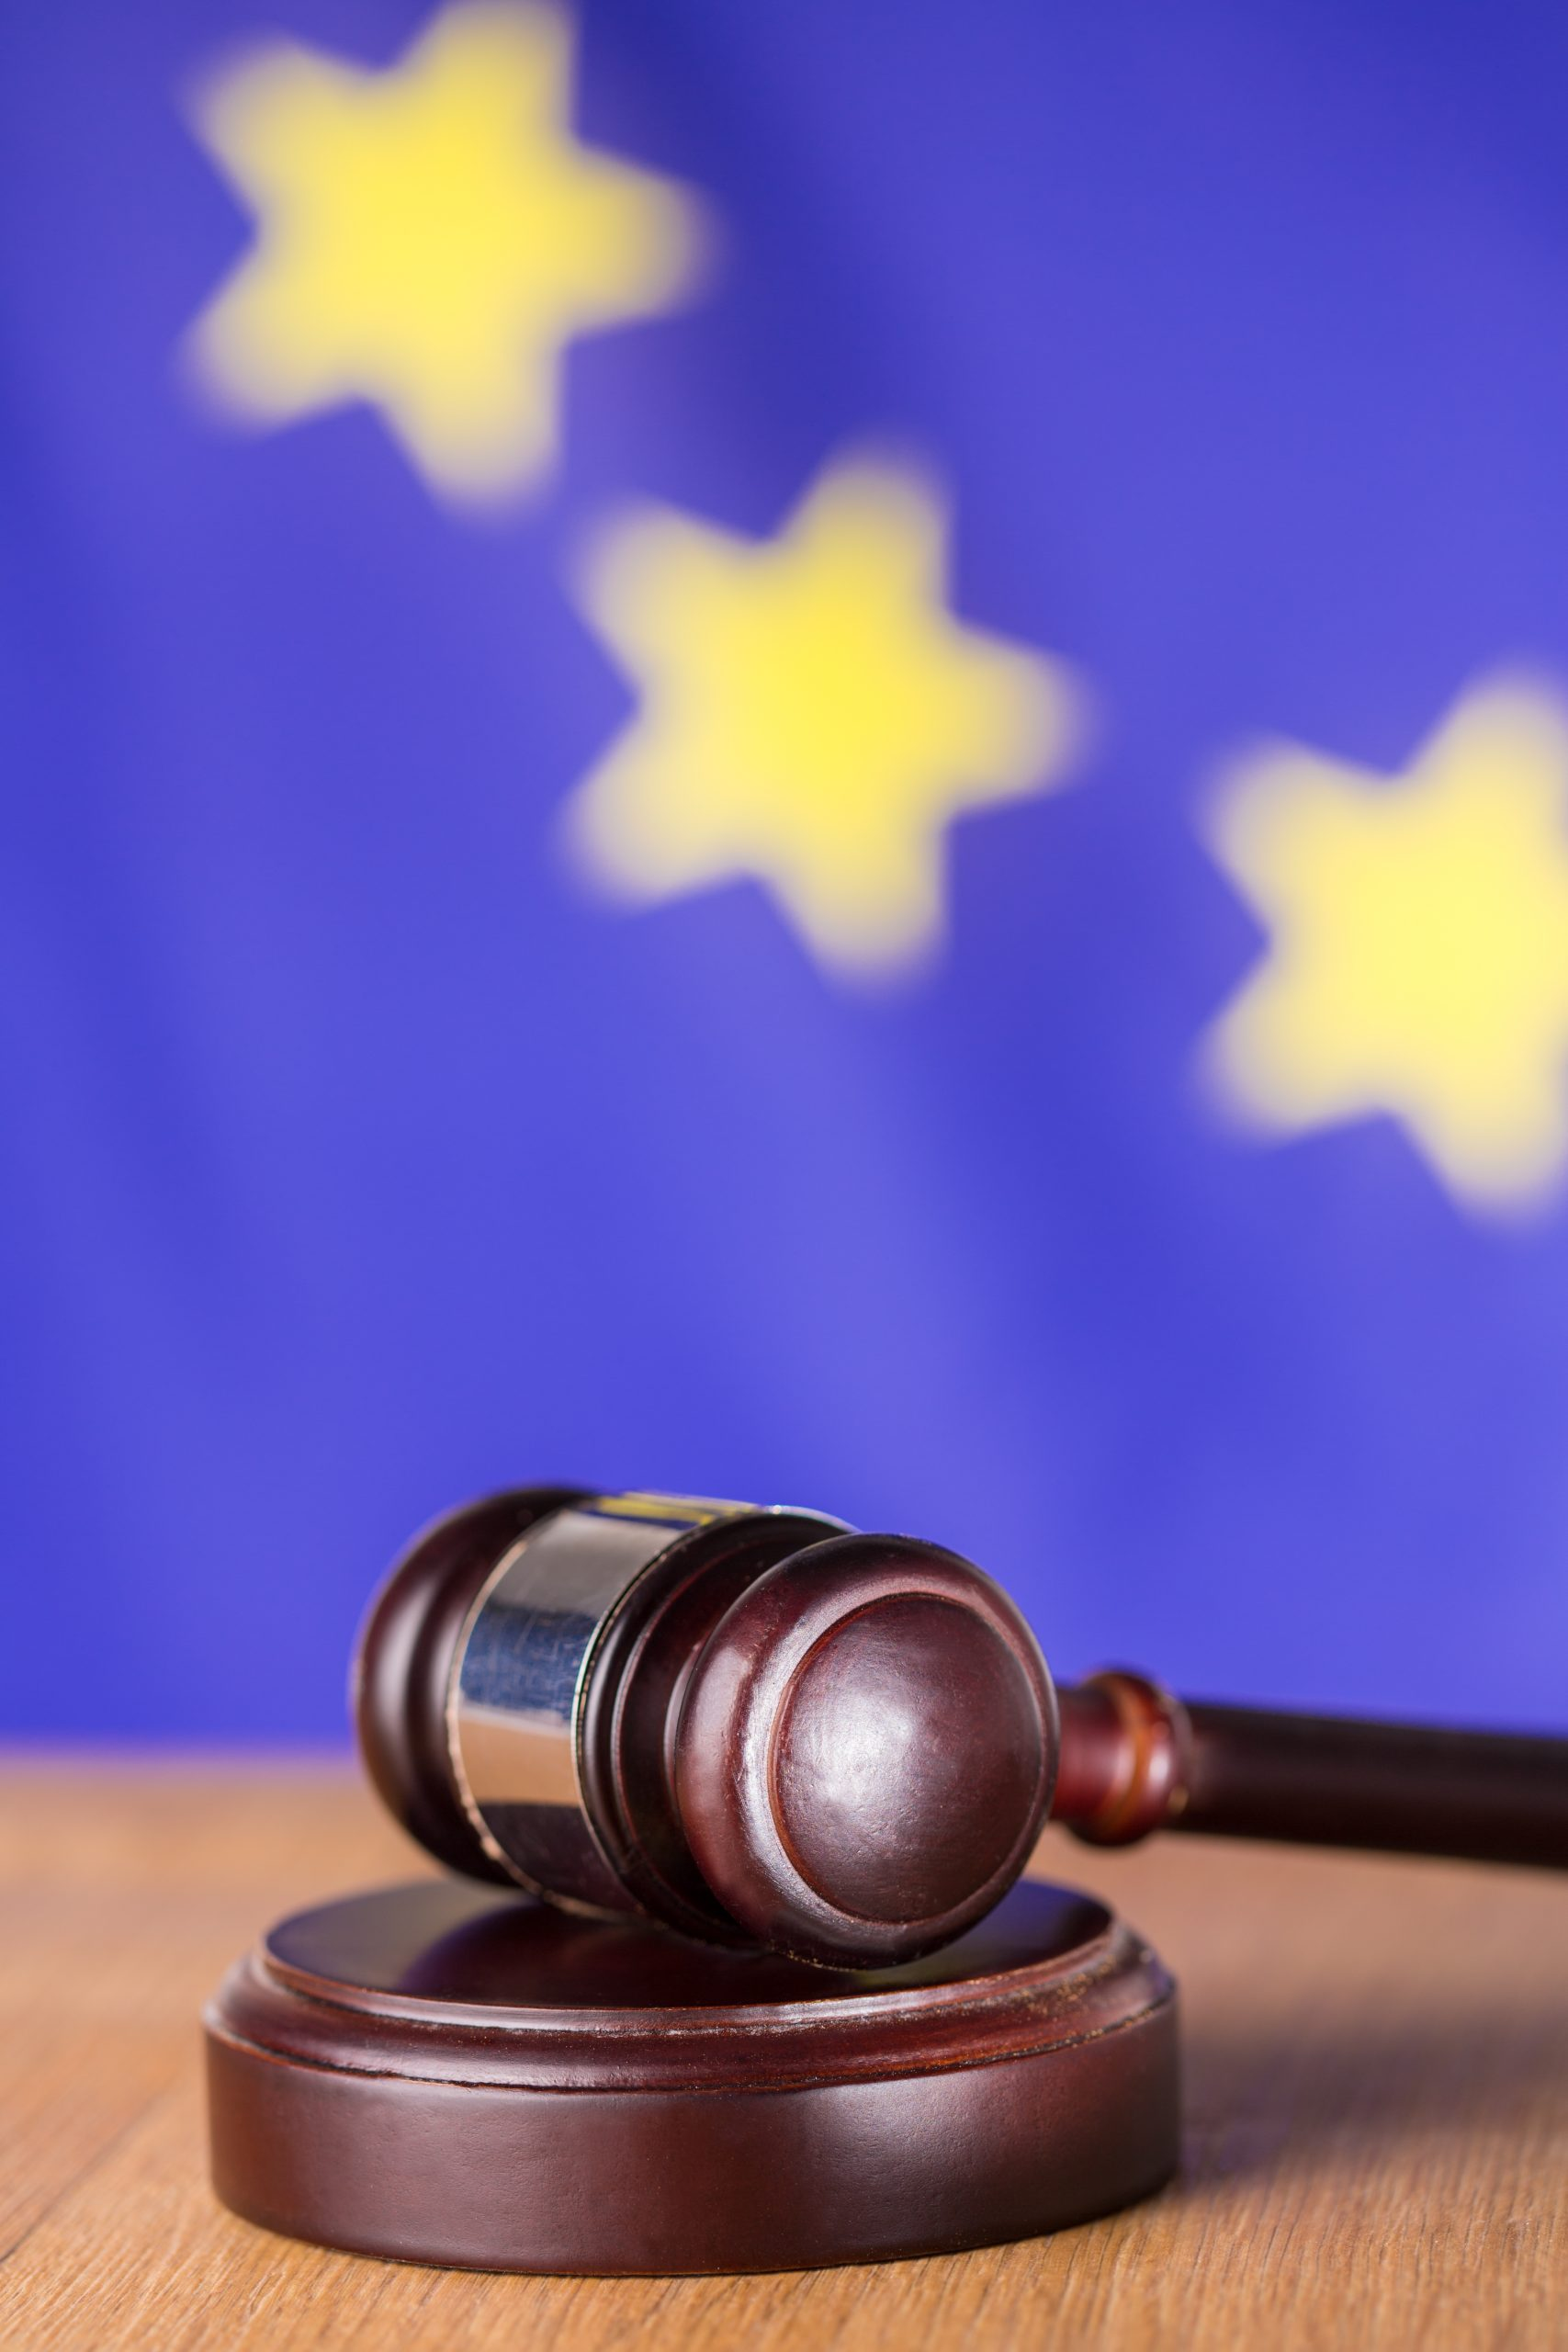 Oak gavel resting on soundblock on european union flag background